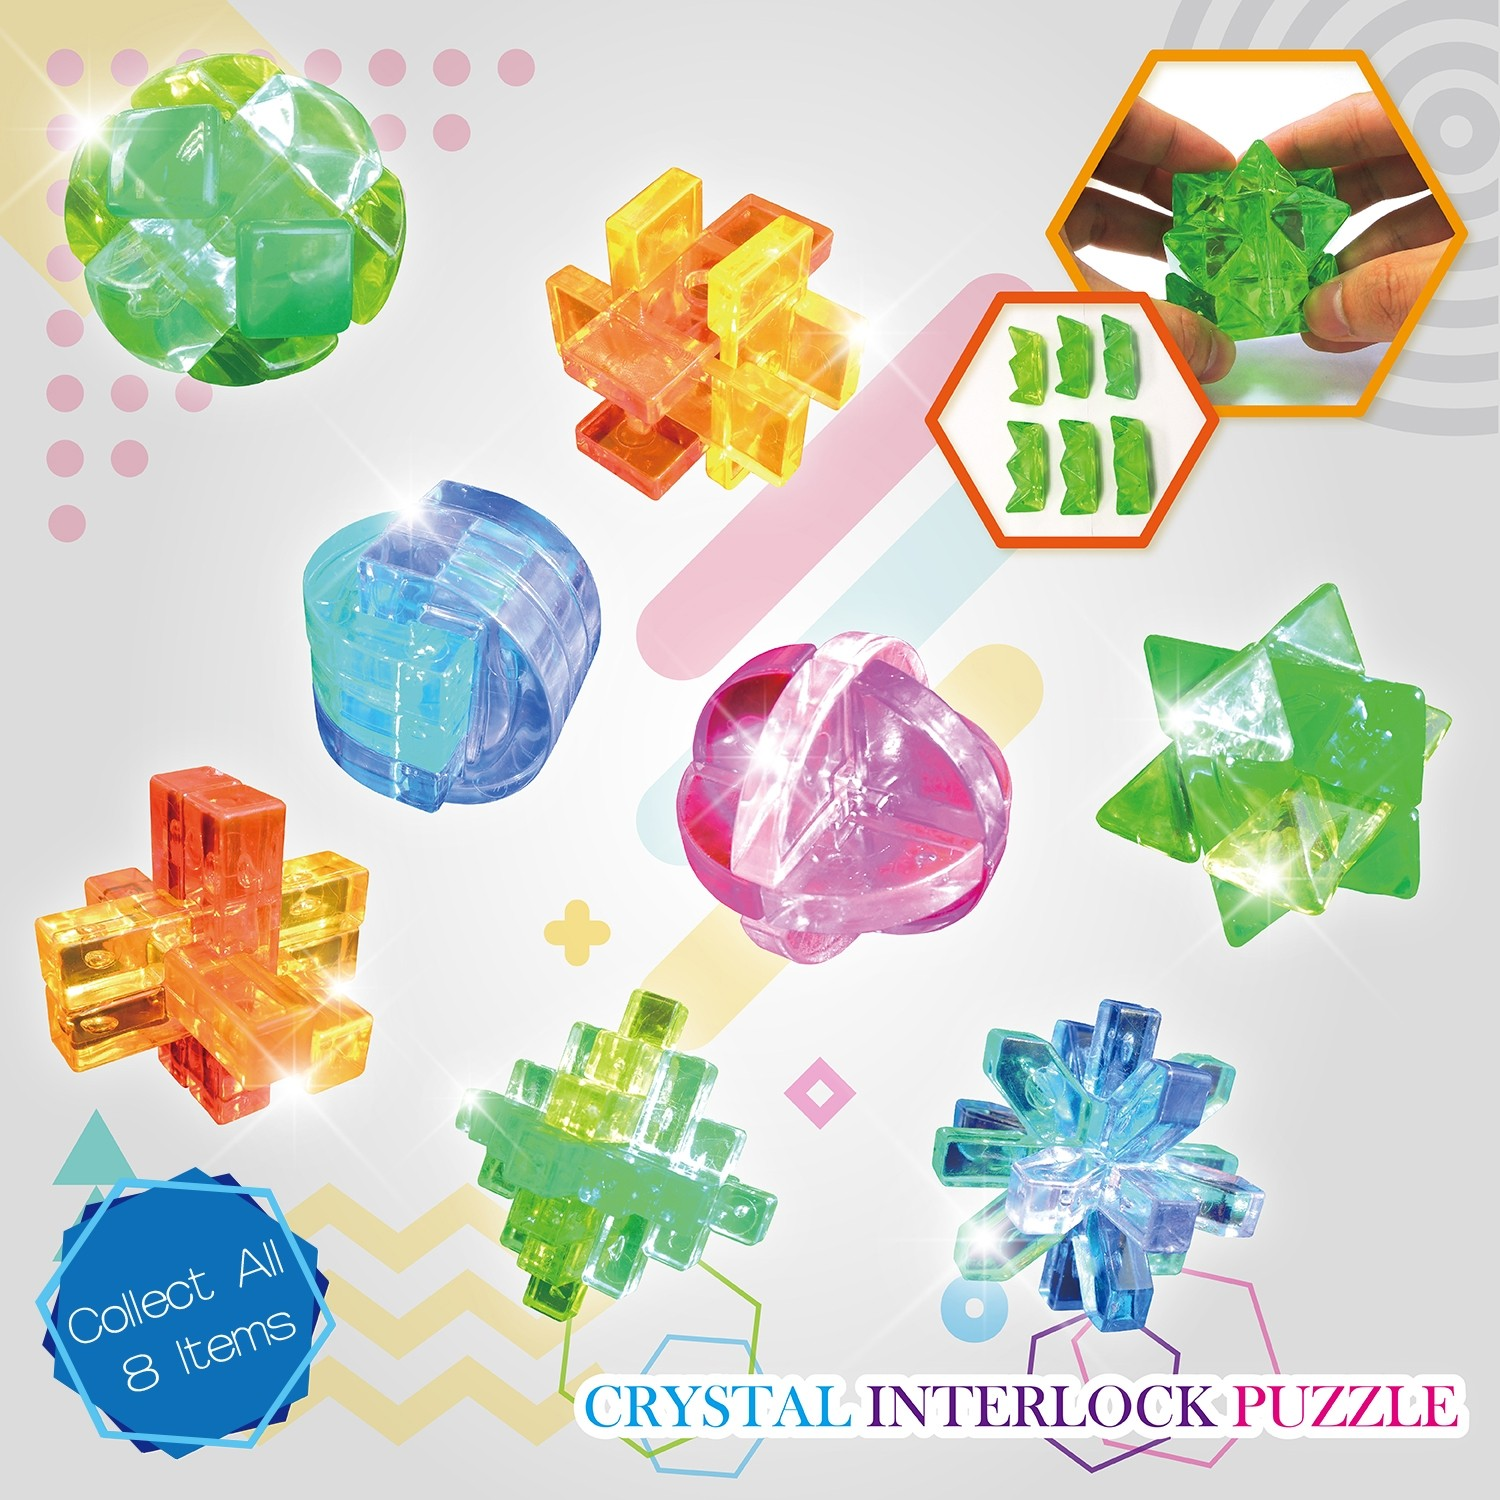 Crystal Interlock Puzzle